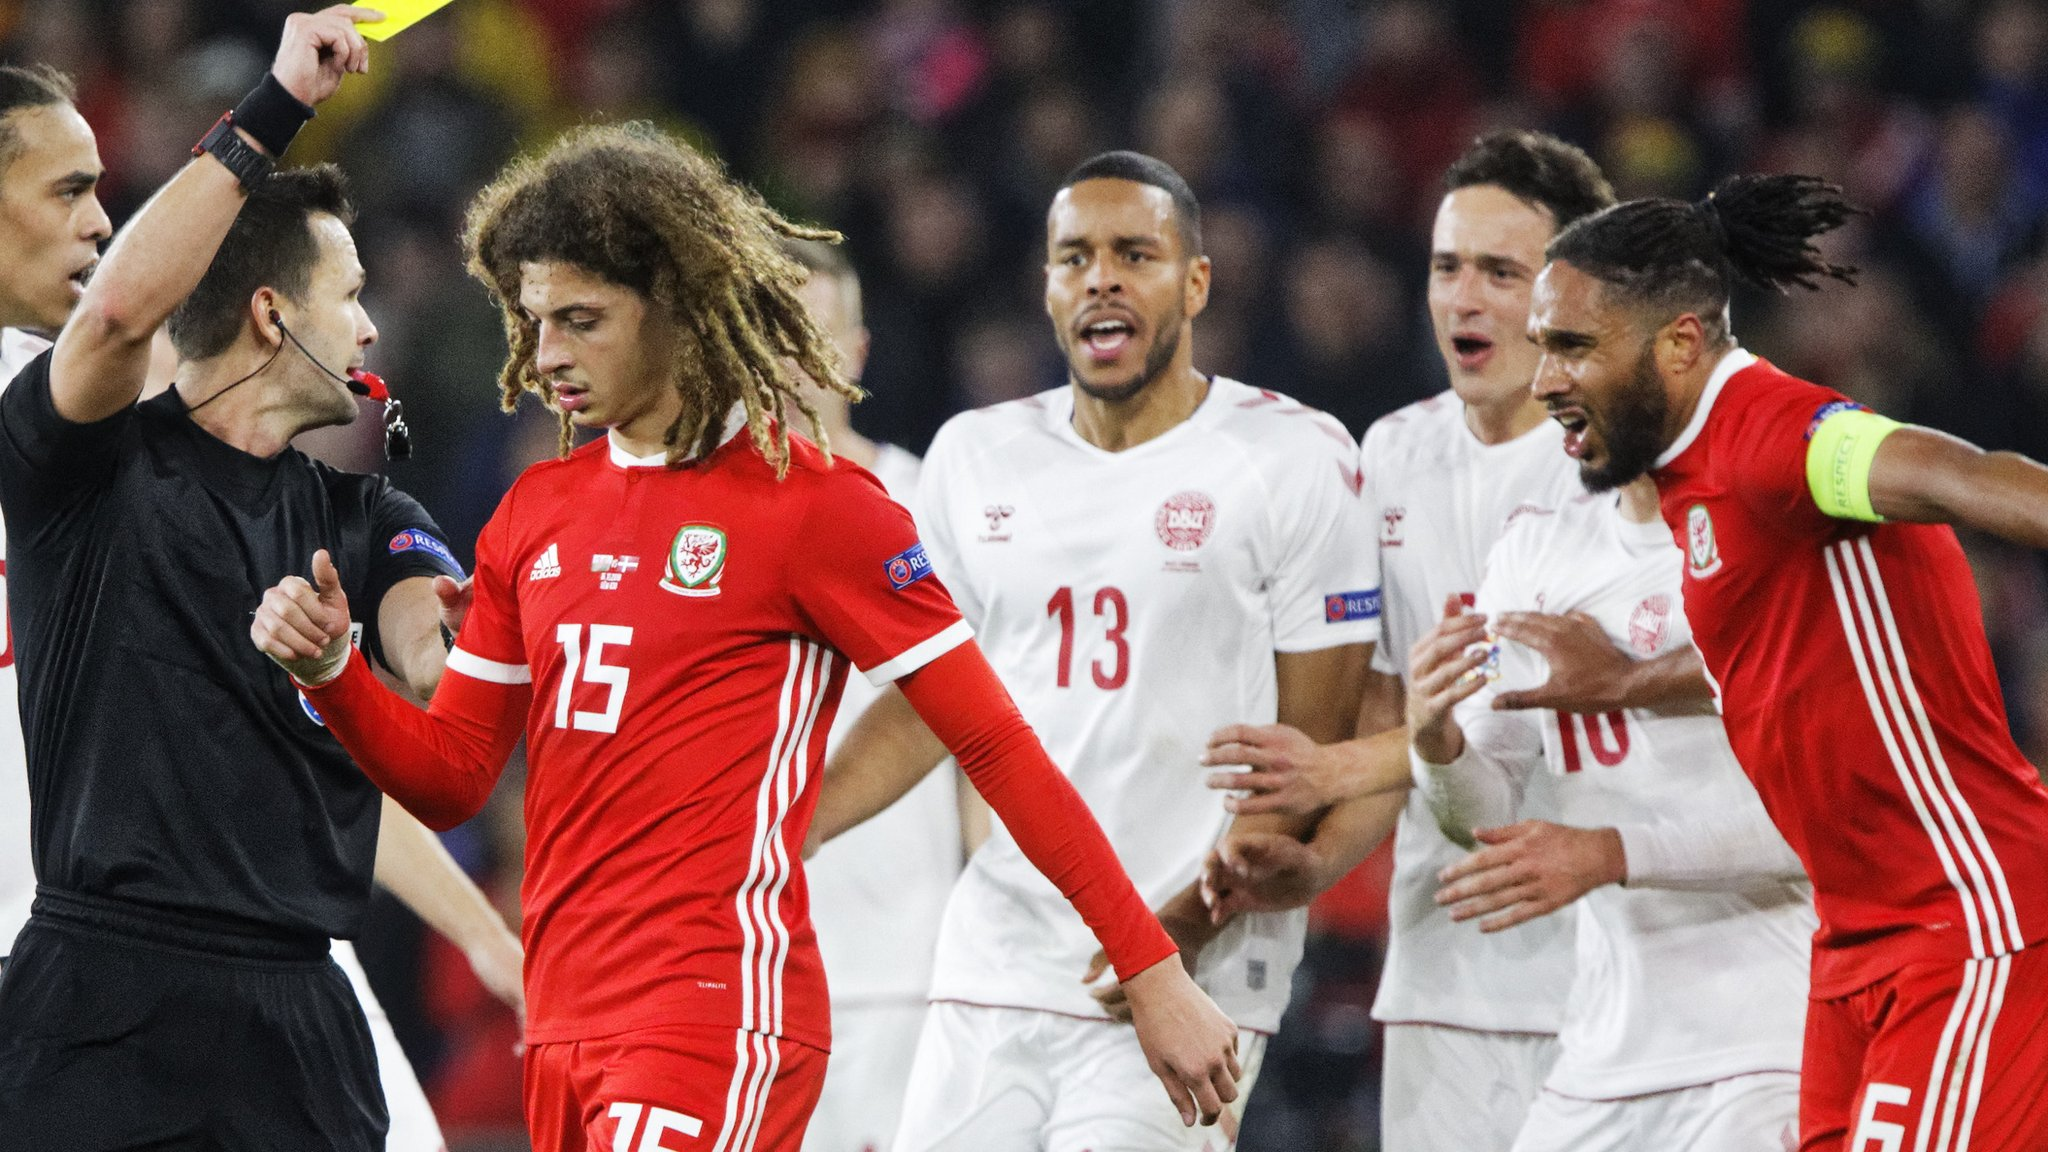 Ryan Giggs: Manager backs Wales 'character' in defeat to Denmark